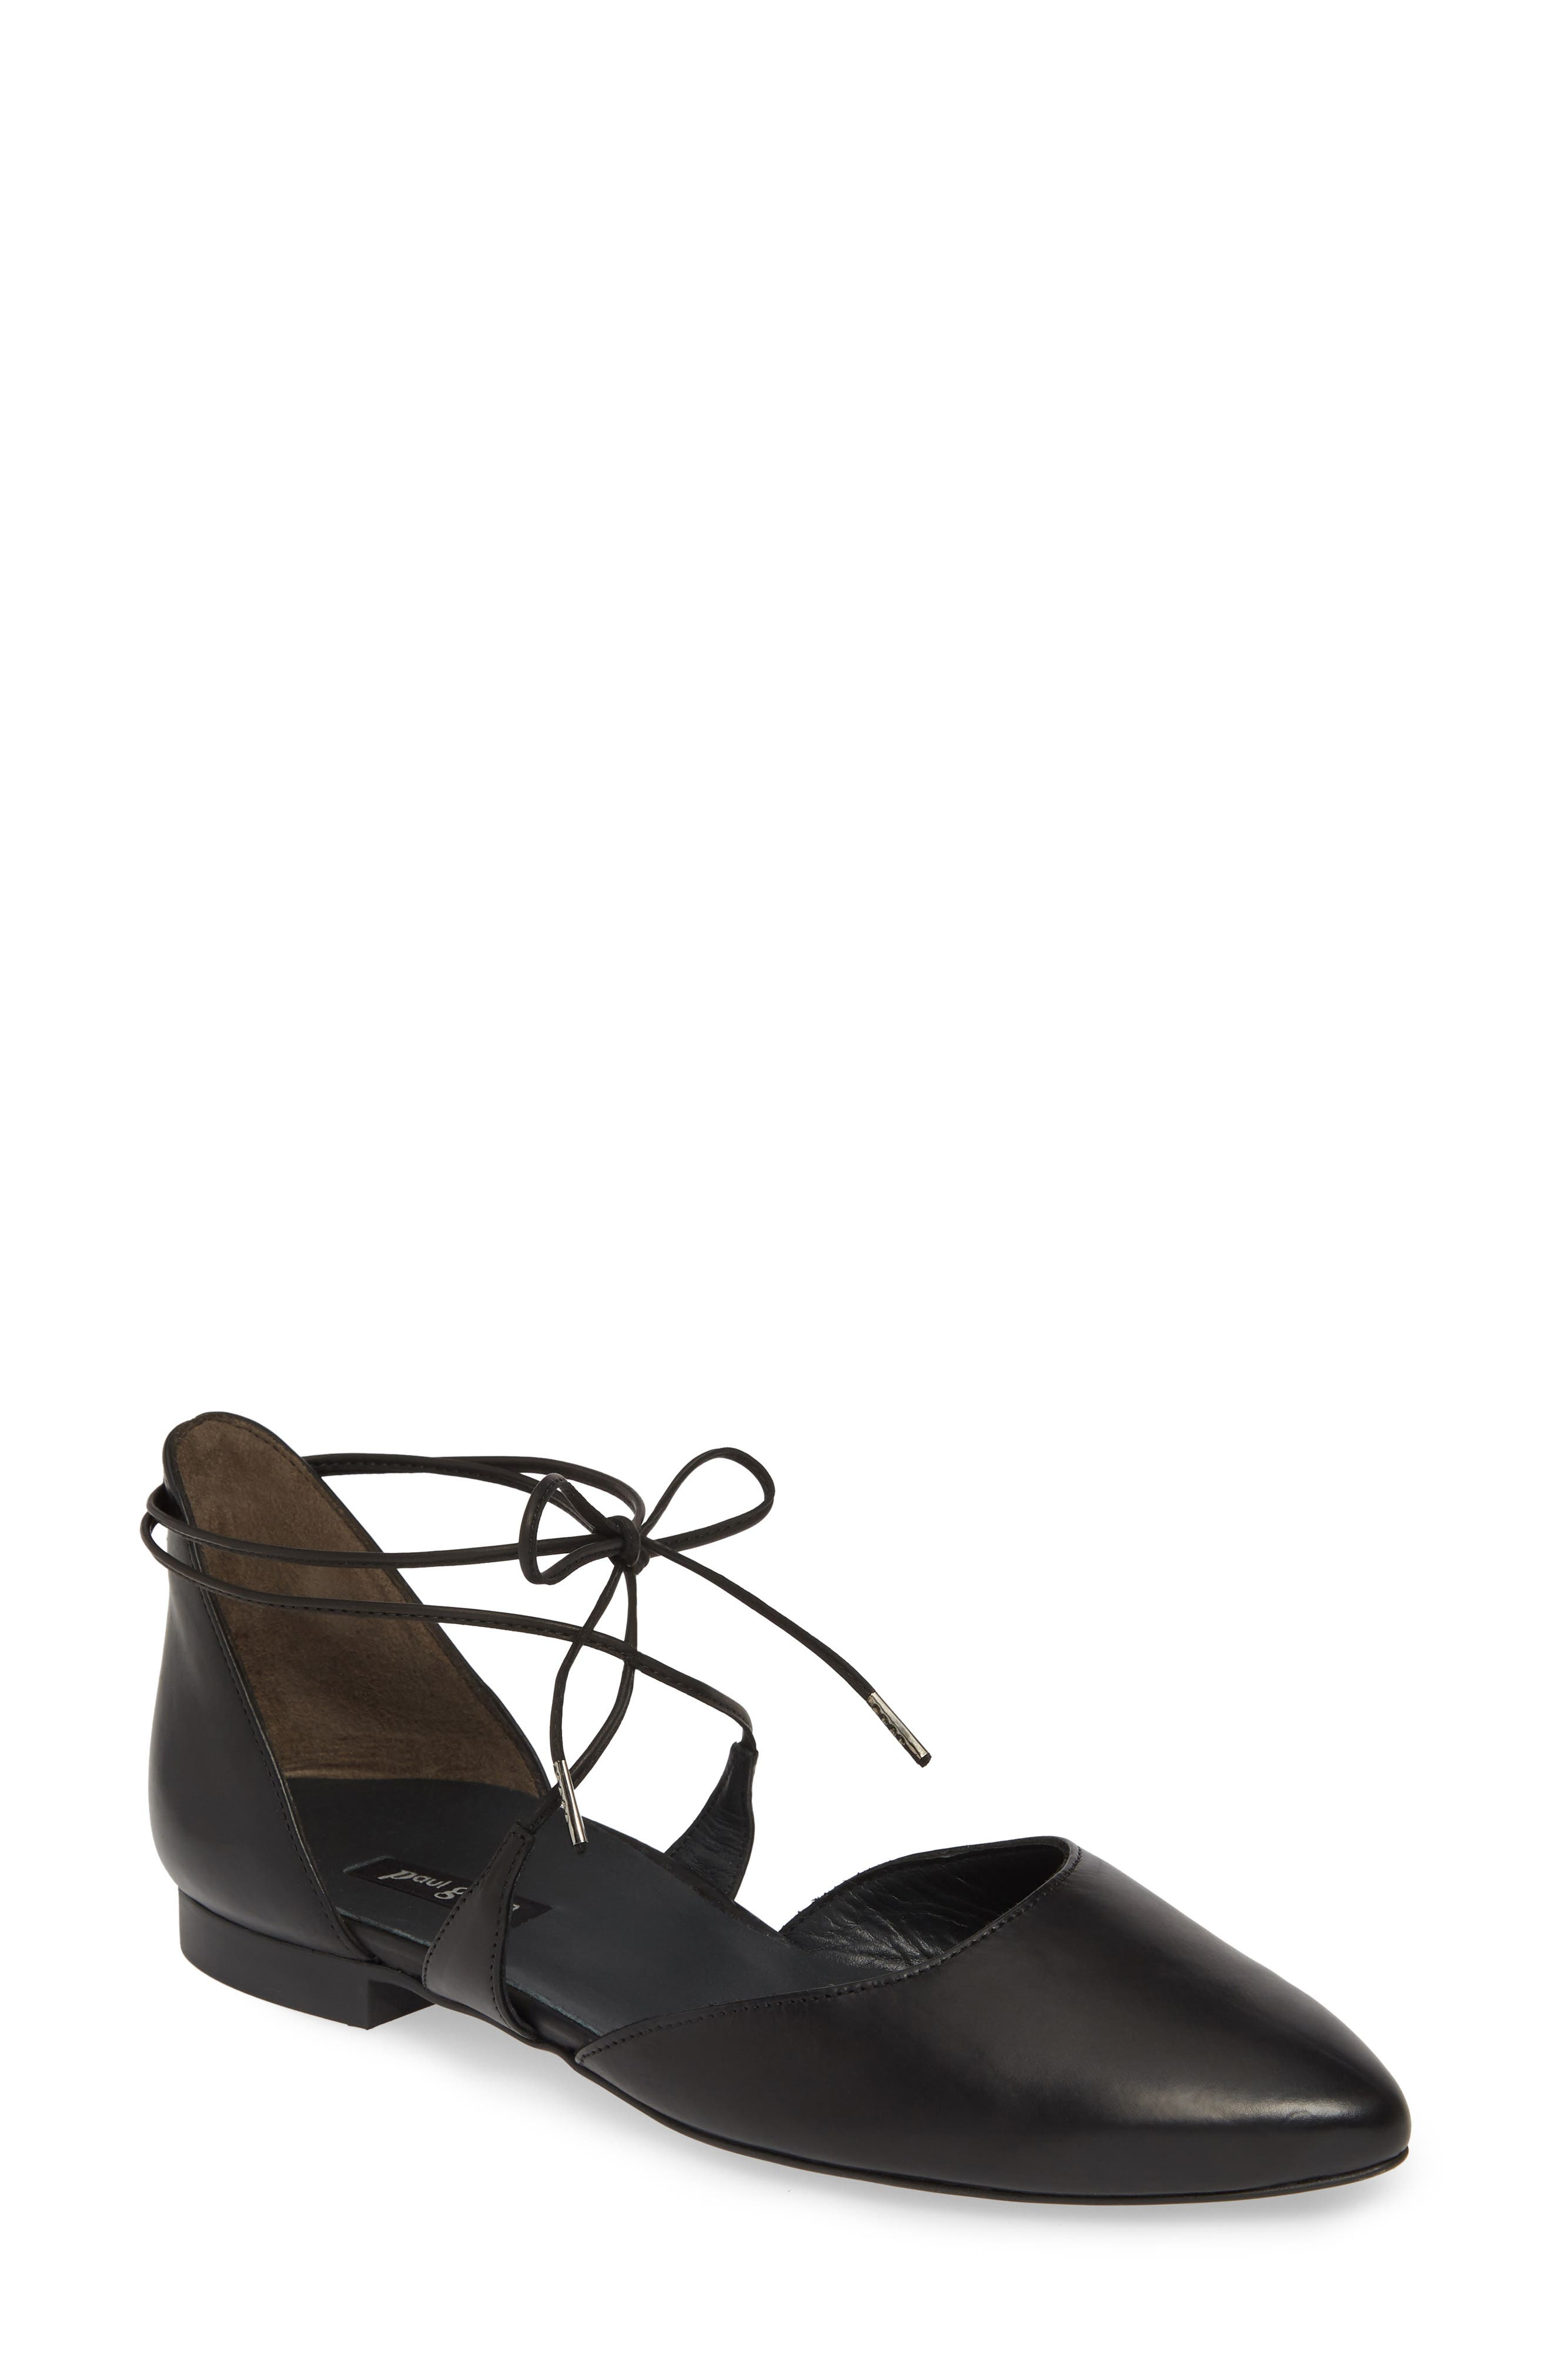 PAUL GREEN, Lace Up Flat, Main thumbnail 1, color, BLACK LEATHER